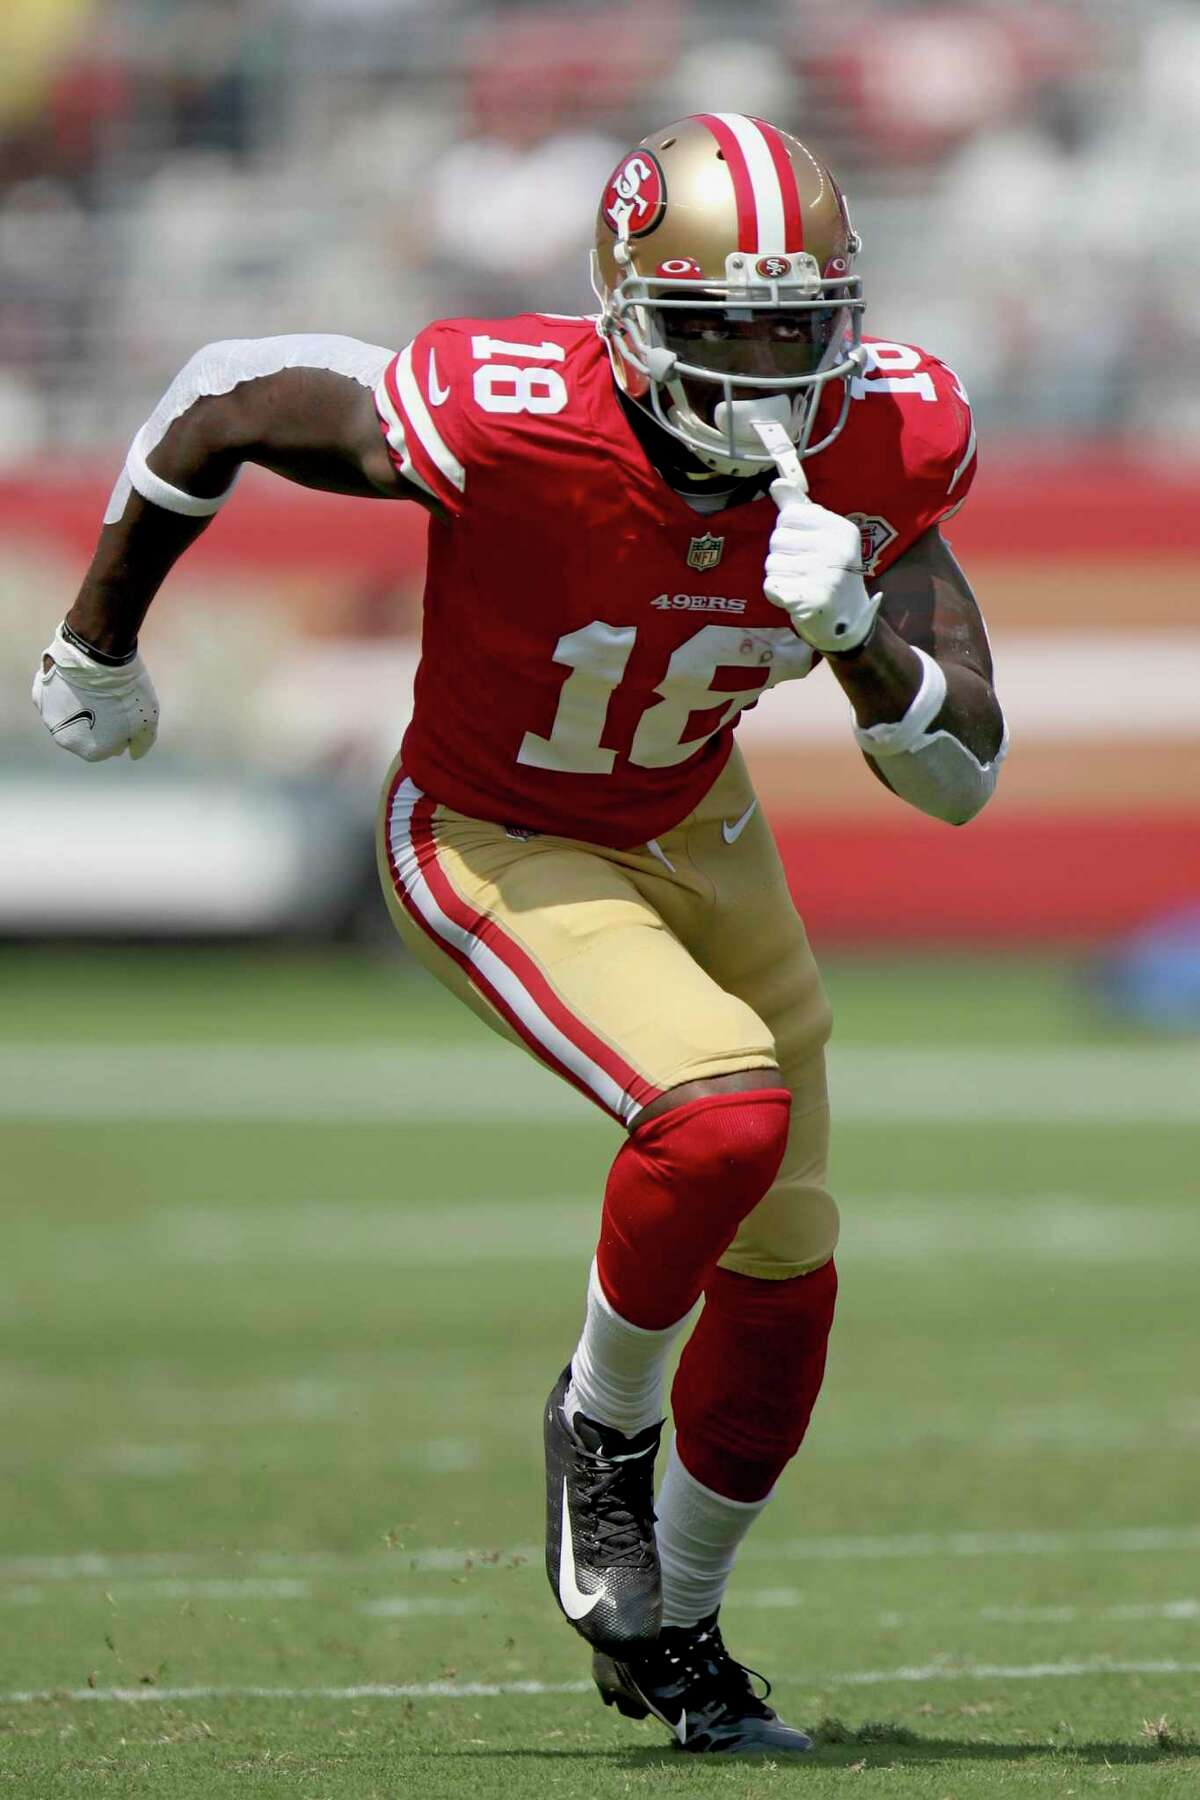 San Francisco 49ers wide receiver Mohamed Sanu (18 ) in action during an NFL football game against the Las Vegas Raiders, Sunday, Aug. 28, 2021, in Santa Clara, Calif. (AP Photo/Scot Tucker)